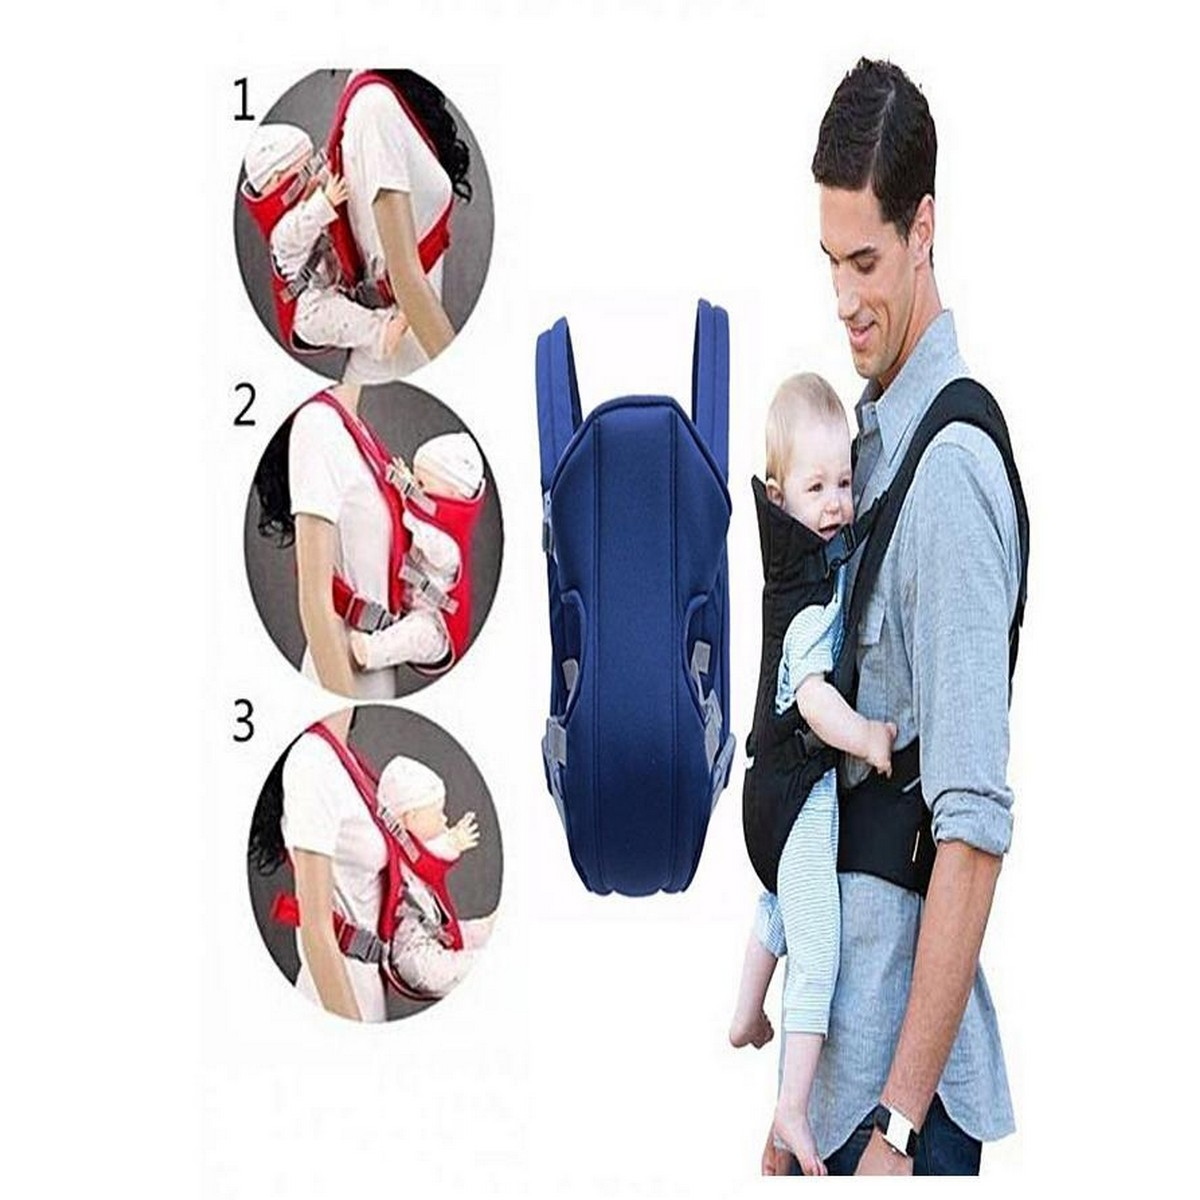 Baby Carrier Bag Multifunctional Crossbody Carrier - MultiColor